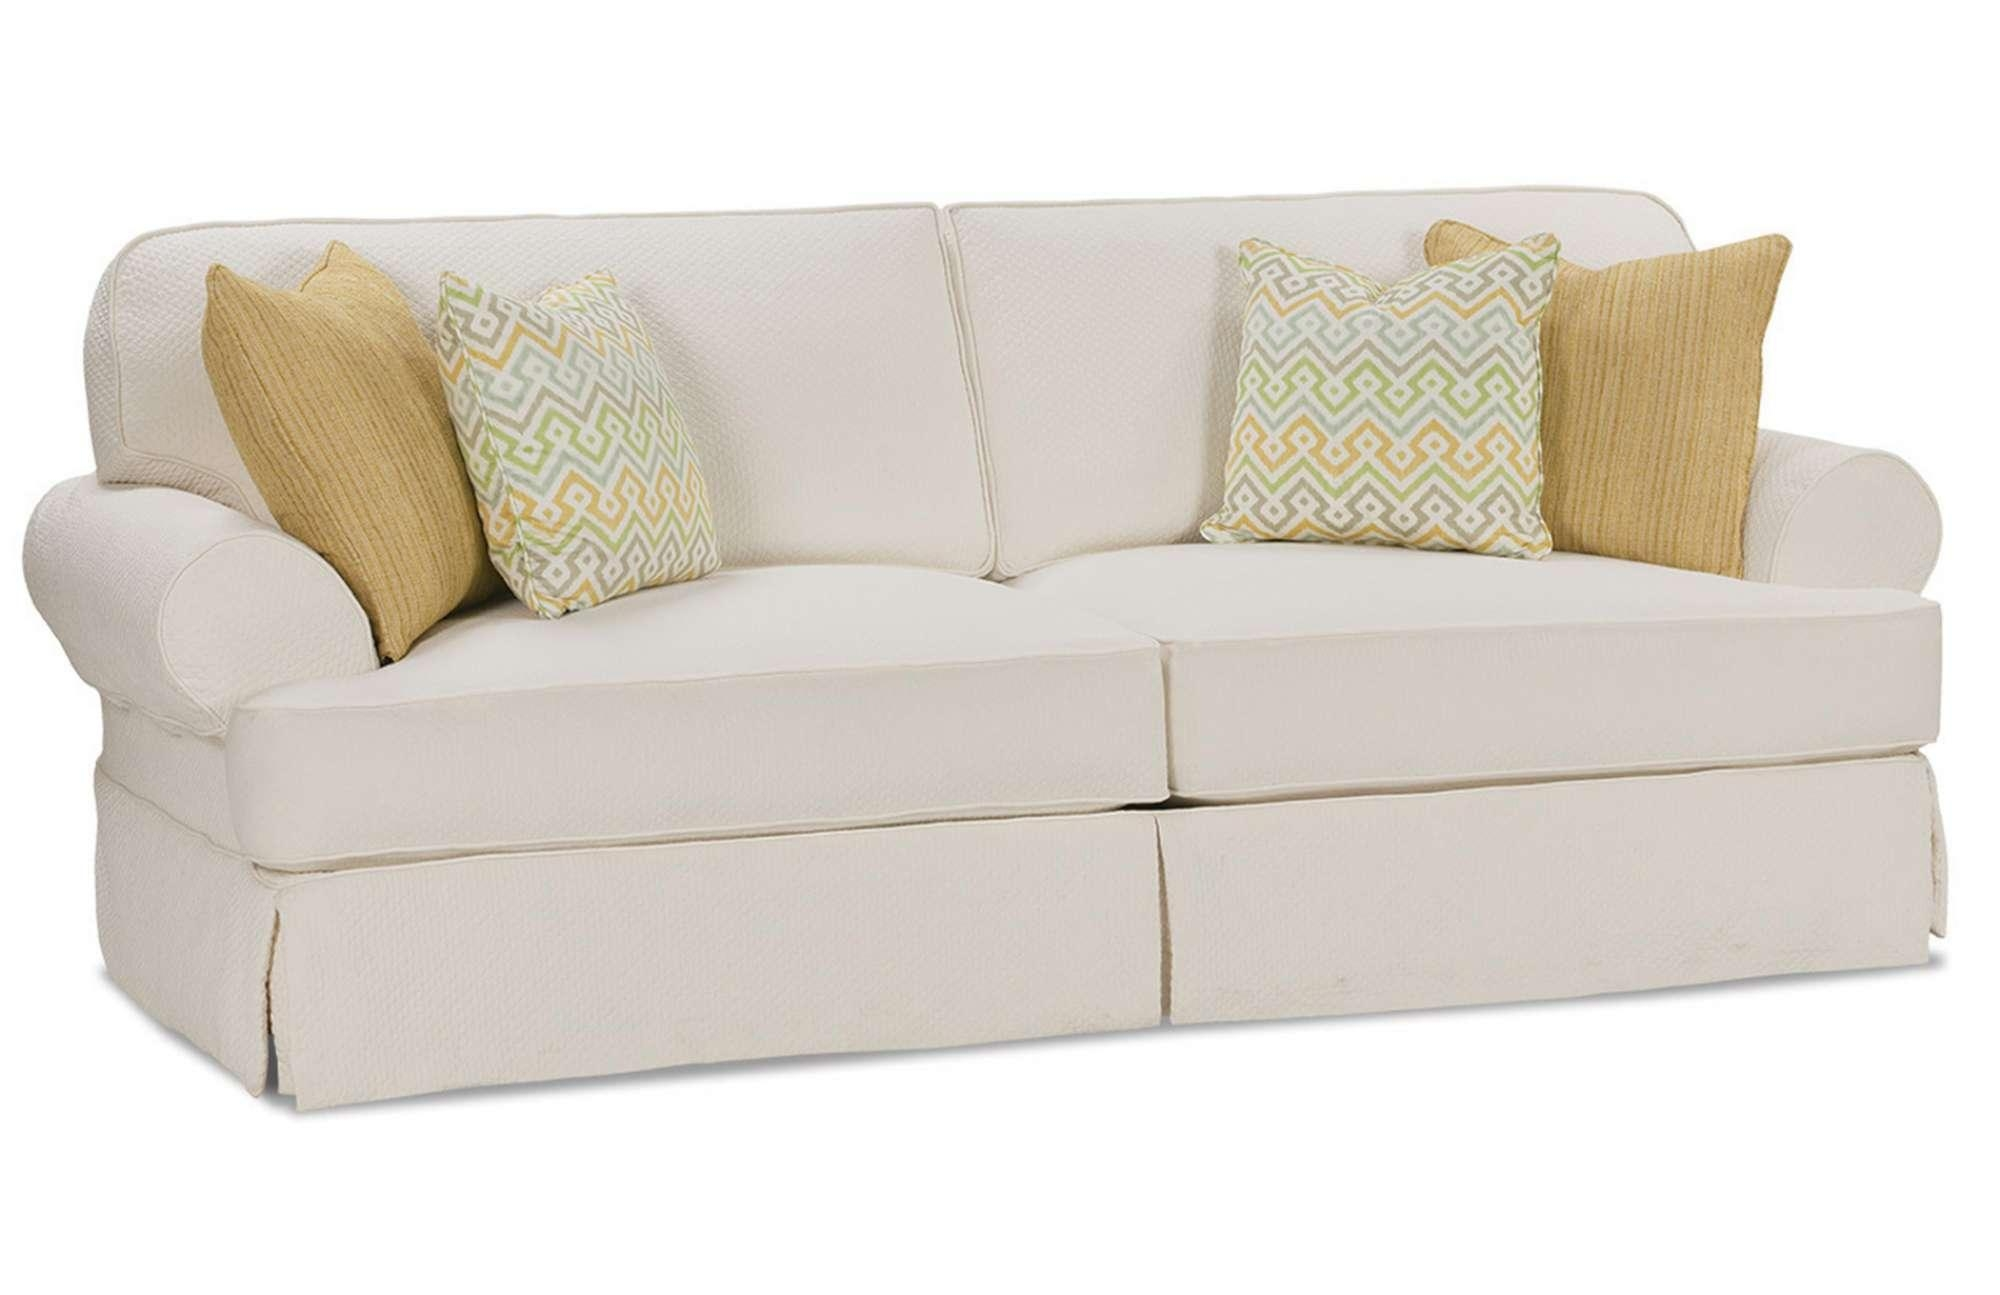 20 Choices Of Rowe Slipcovers Sofa Ideas